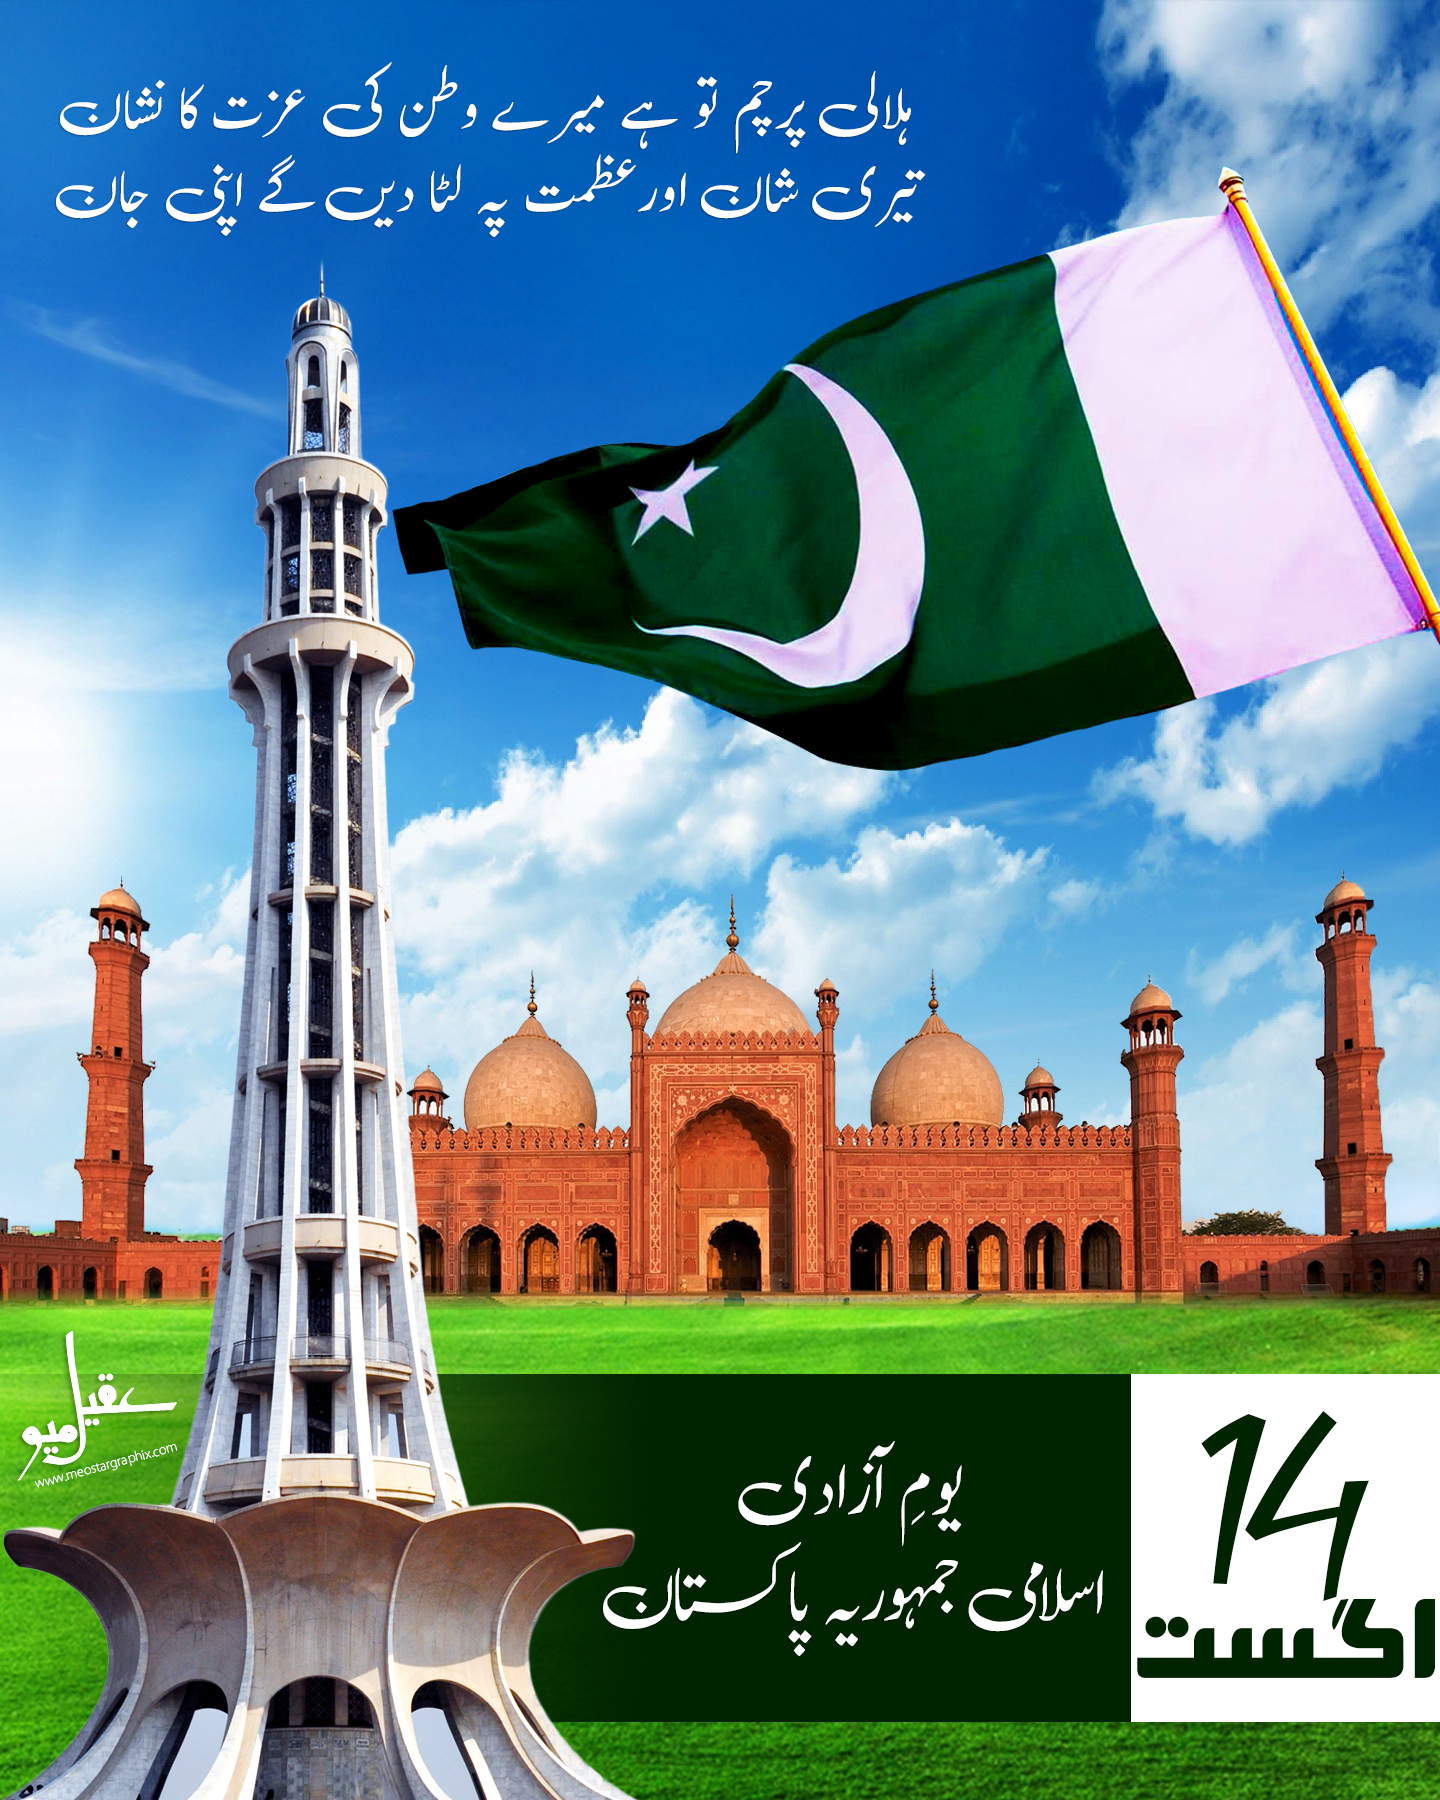 essay pakistan day Essay on pakistan day celebration 2015, show on pakistan day sense 23 turning 2017 2 days ago if you are acceptable for the source on shakespeare day custom 23 reading 2017 in french than you are at third place.